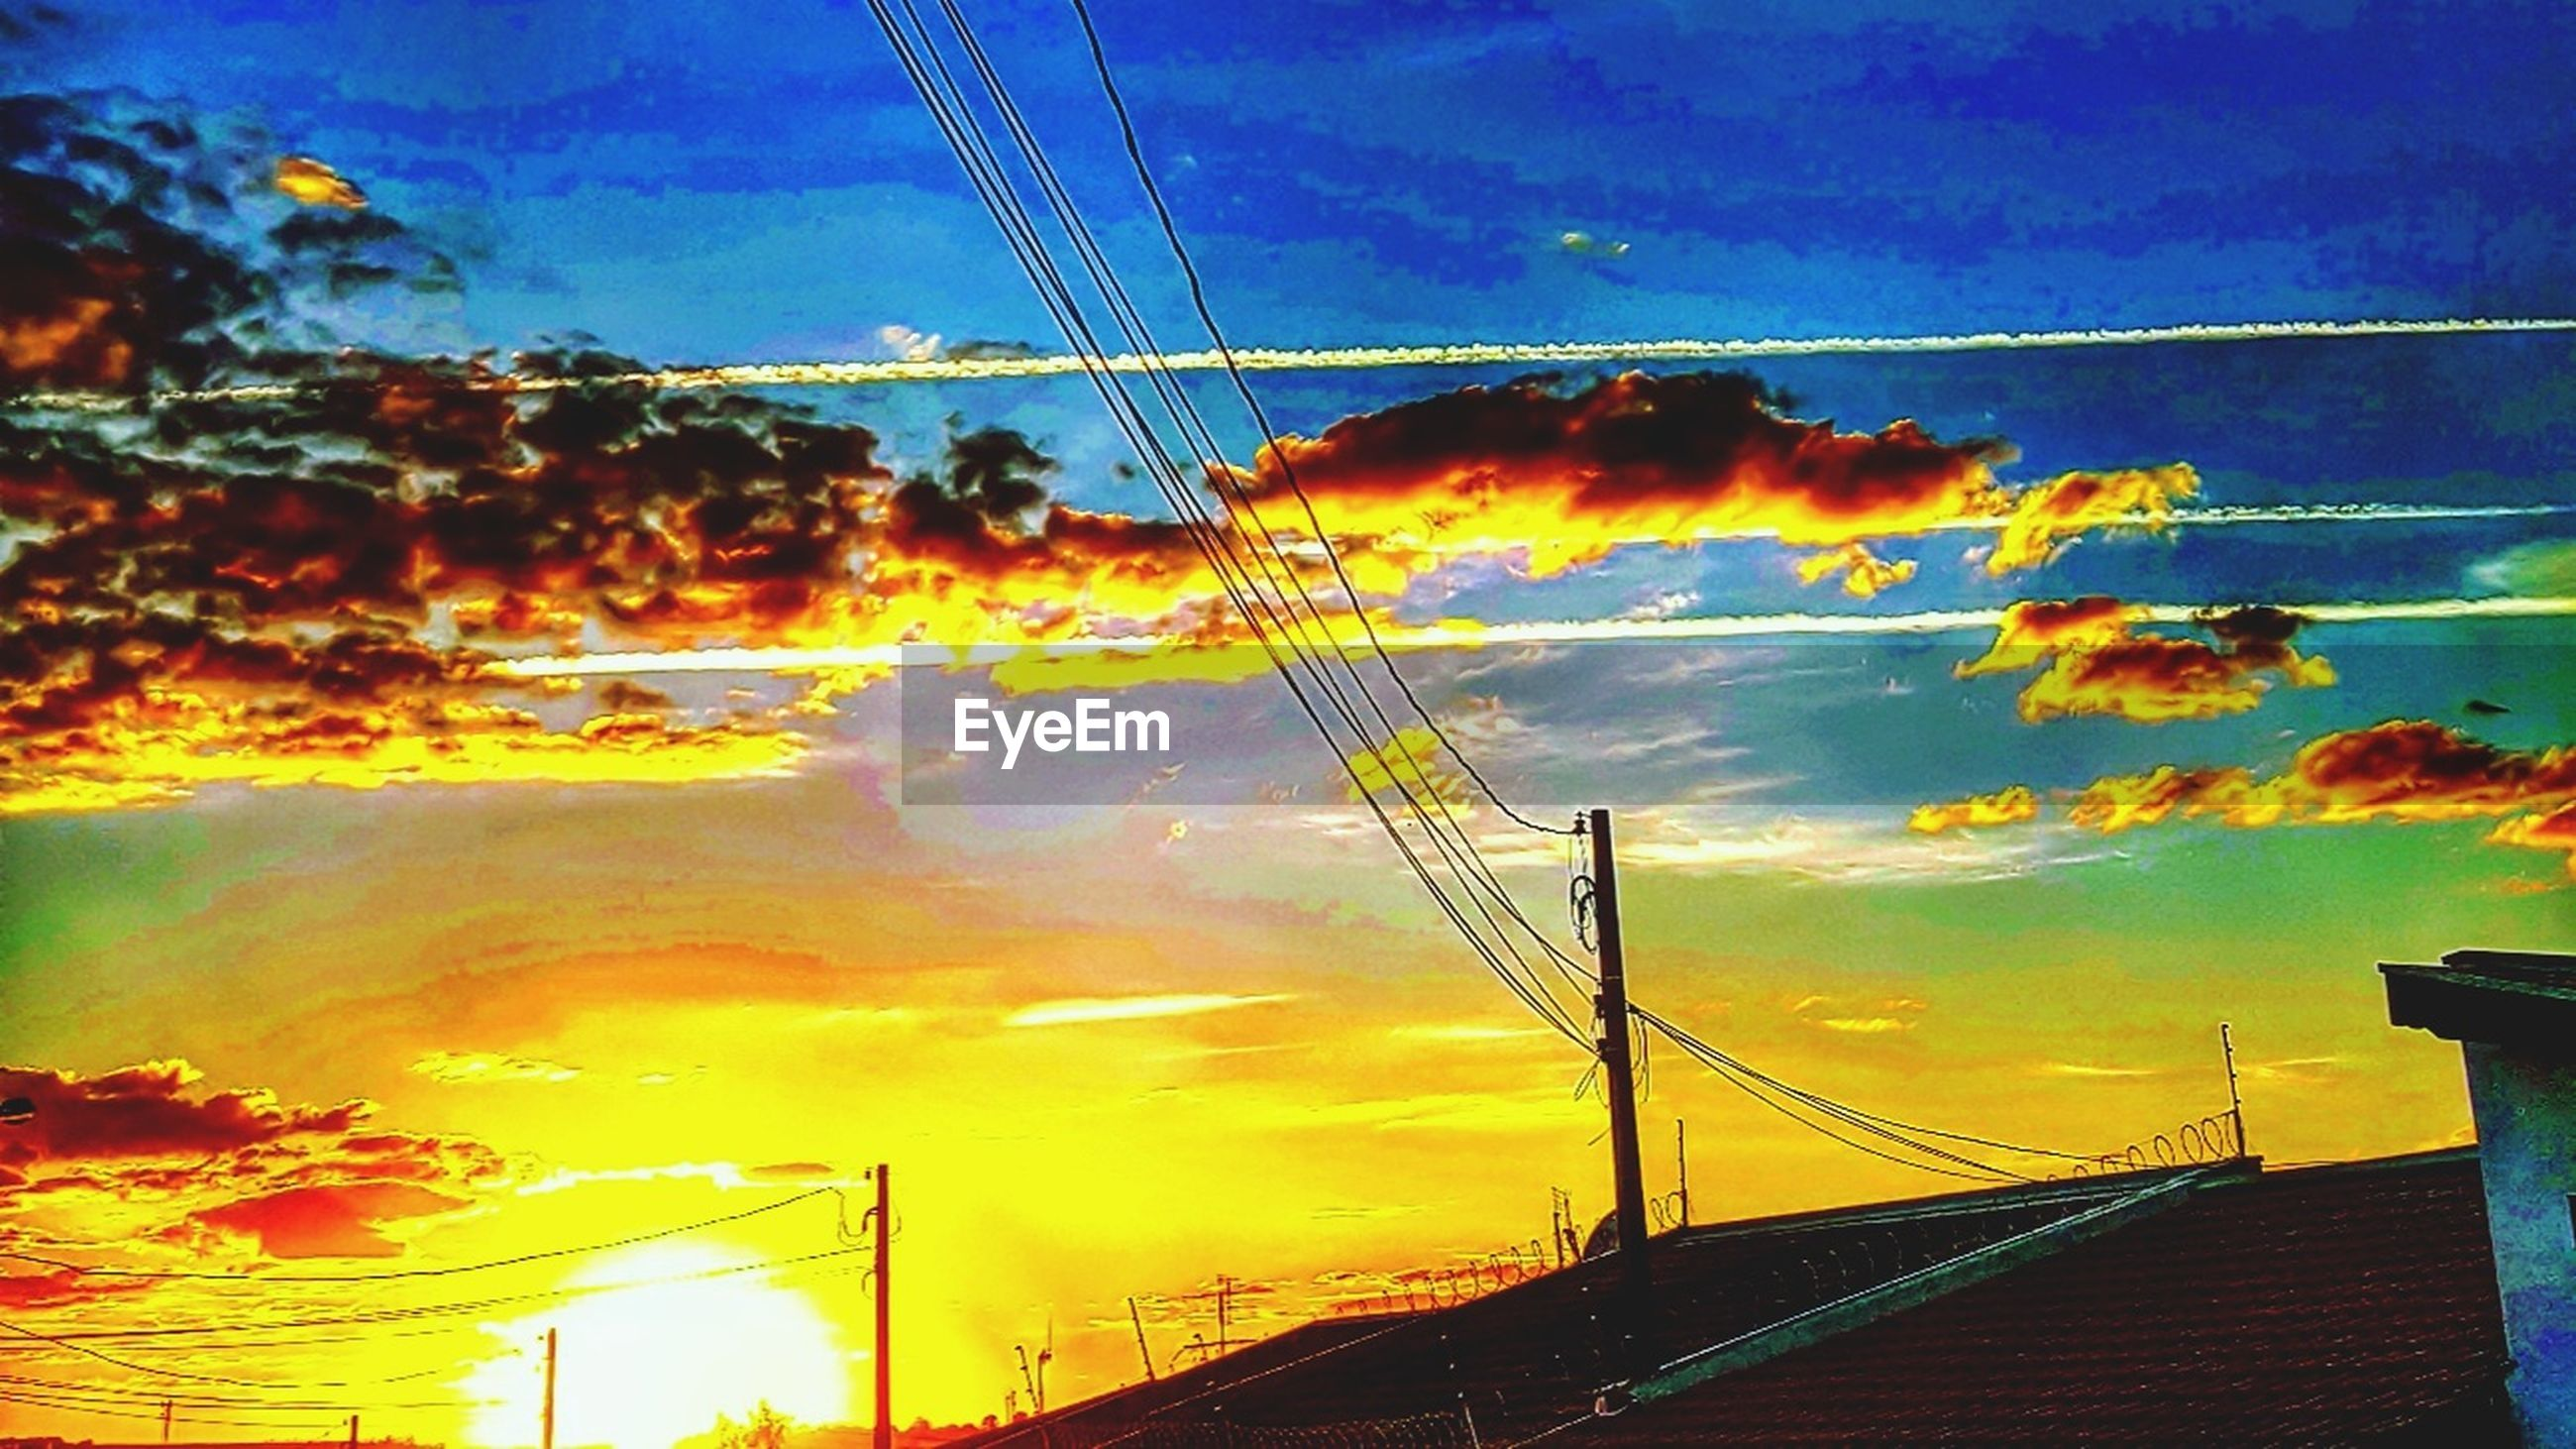 cable, sky, cloud - sky, connection, sunset, power line, power supply, no people, electricity pylon, low angle view, silhouette, outdoors, built structure, nature, building exterior, telephone line, electricity, technology, architecture, scenics, beauty in nature, day